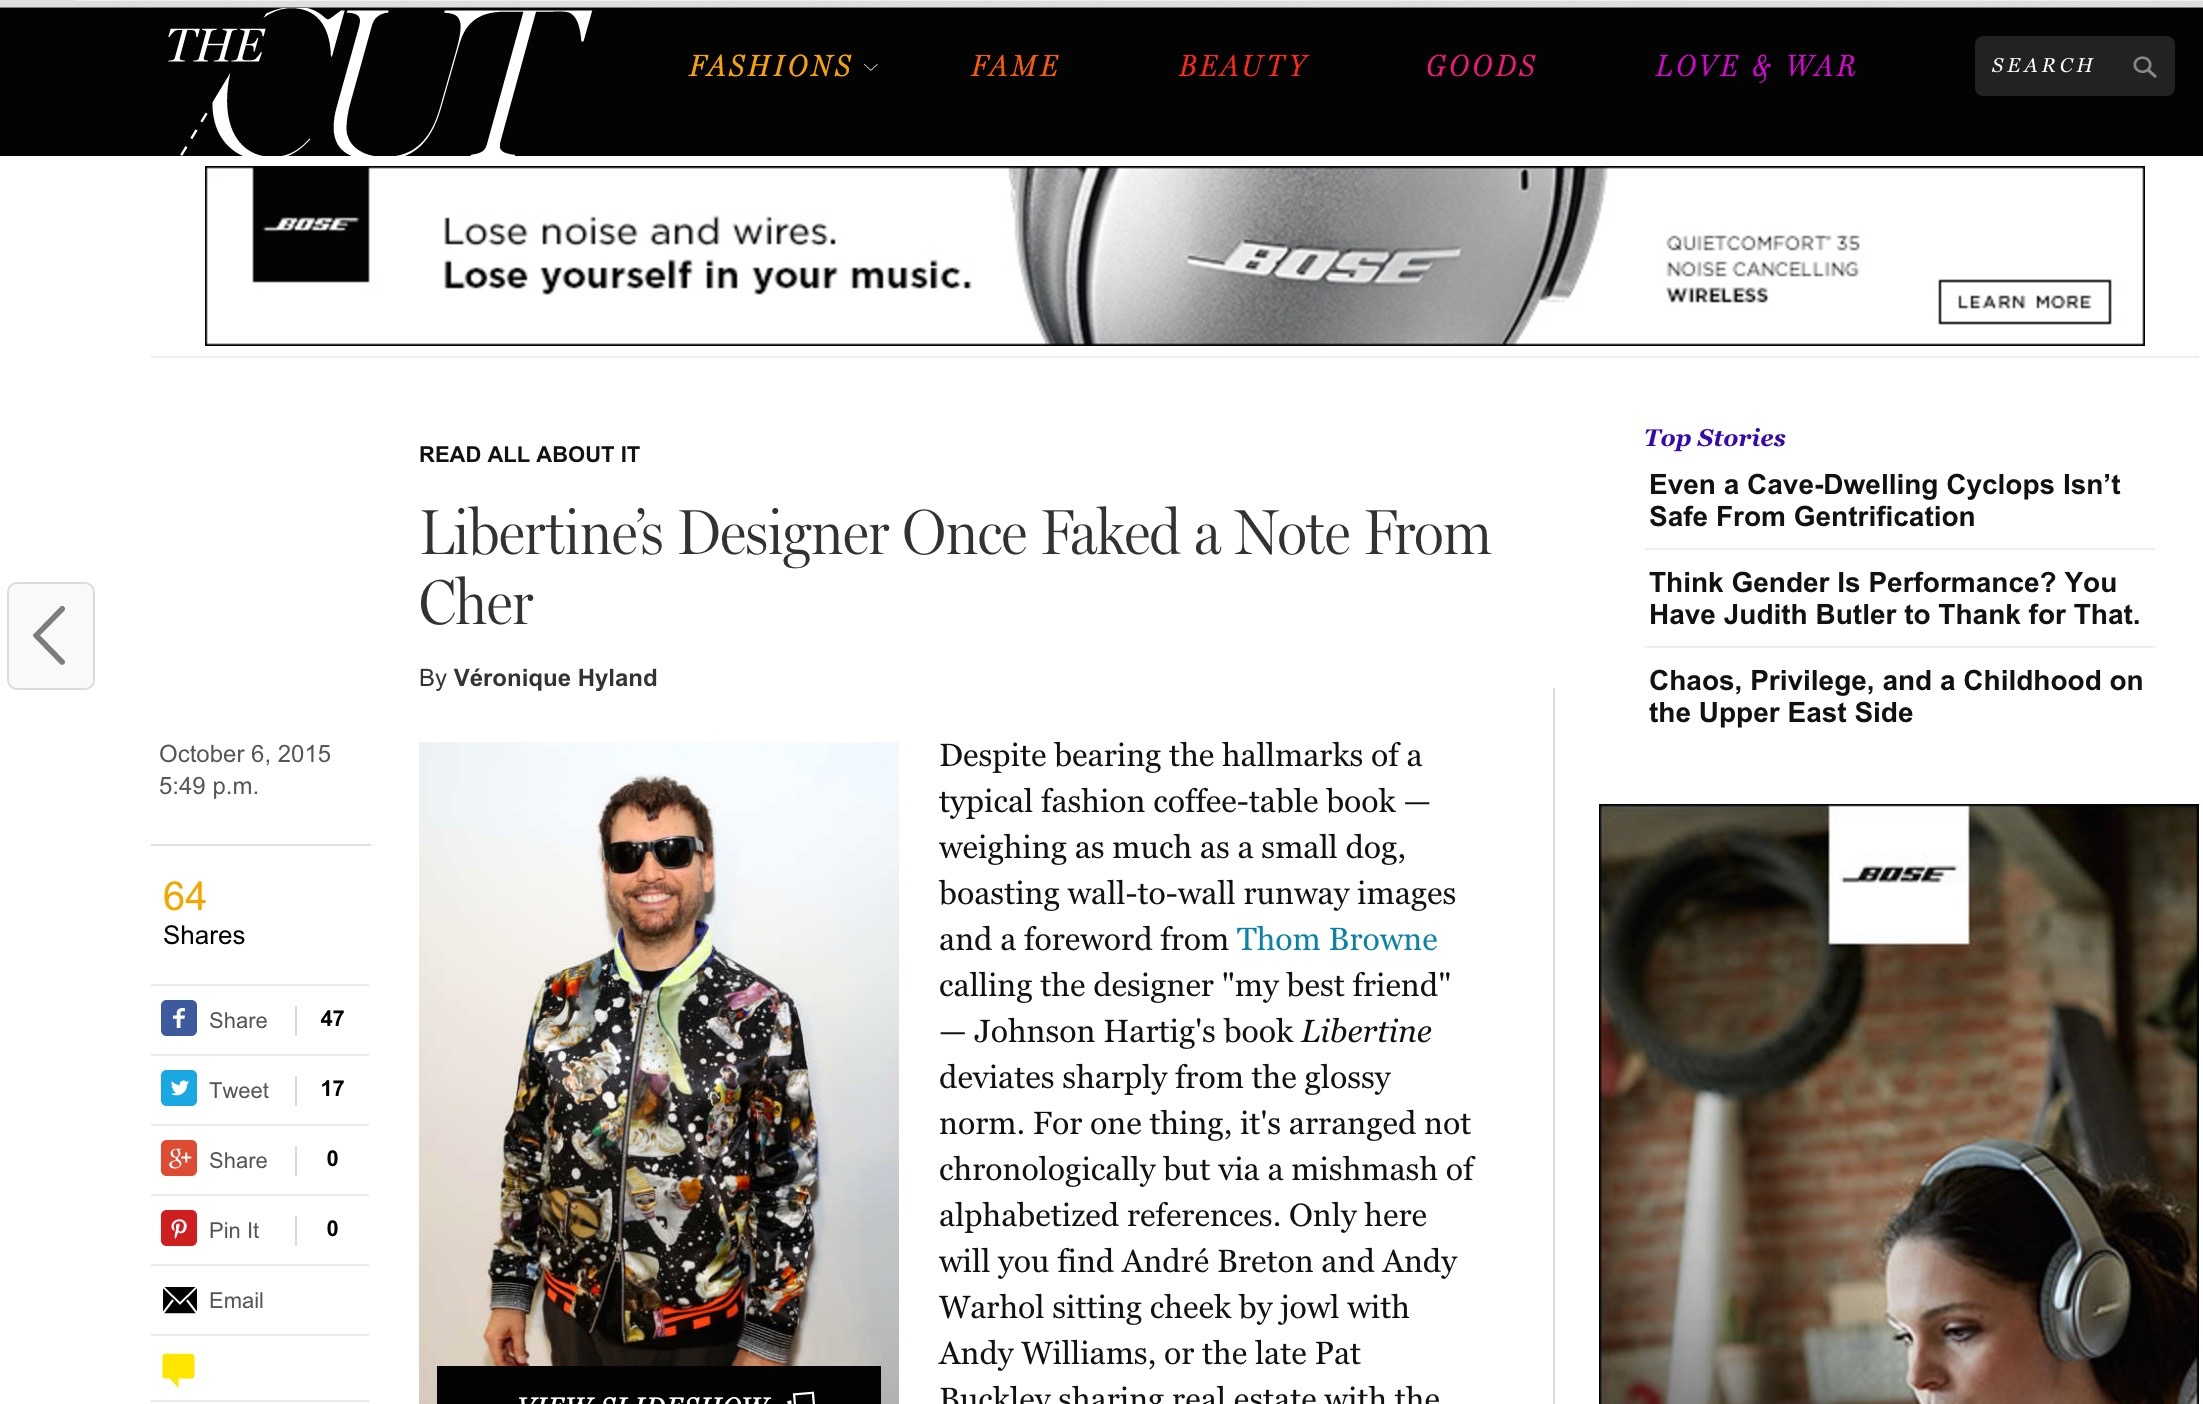 NY Mag - The Cut : Libertine